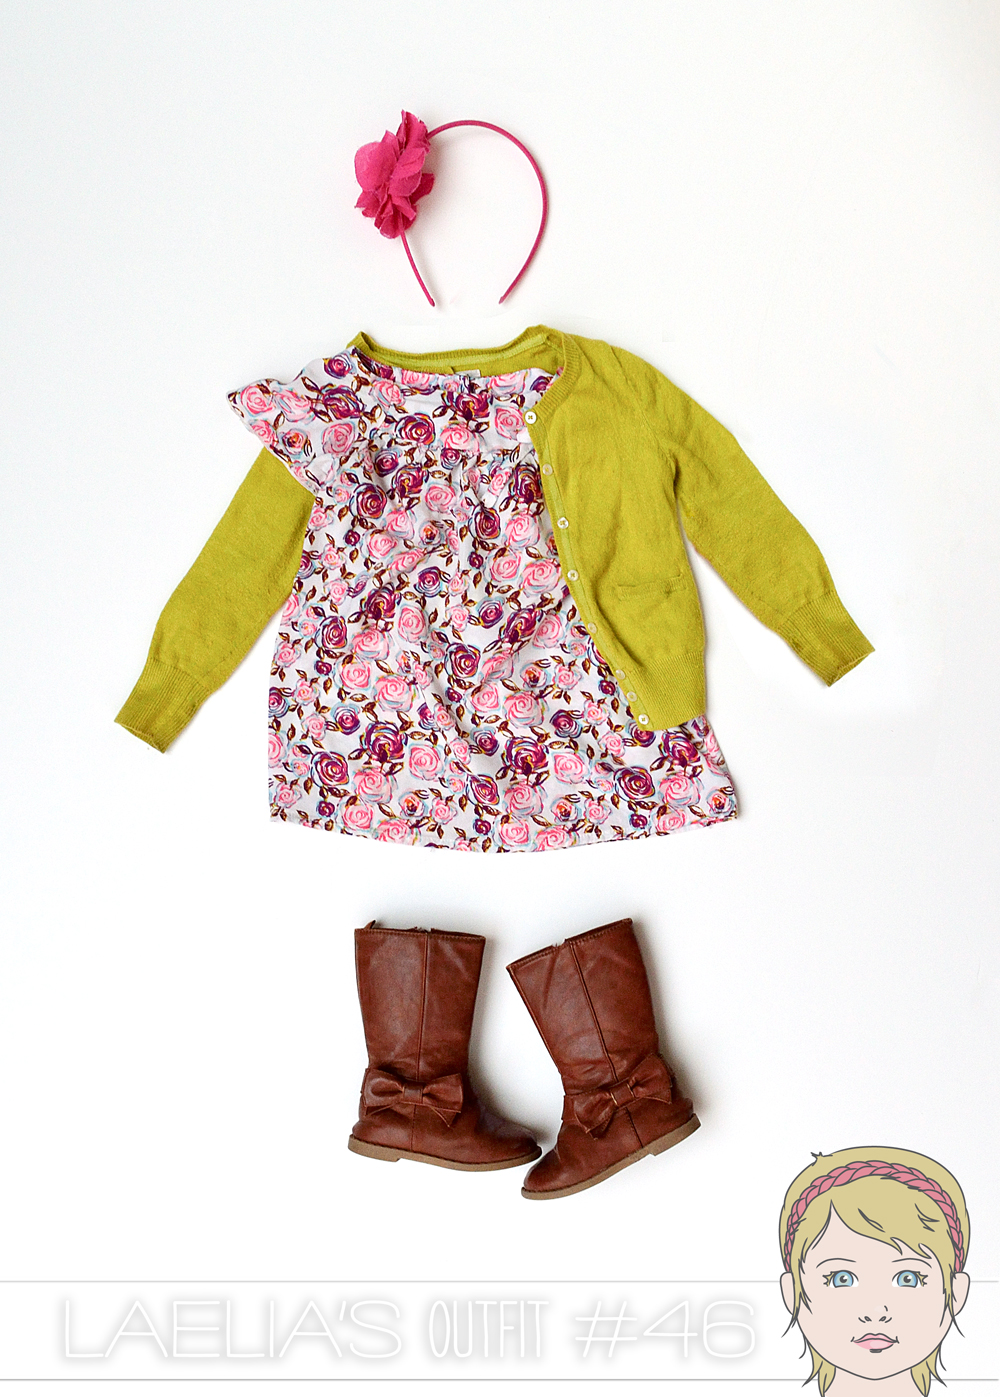 LaeliaOutfit46